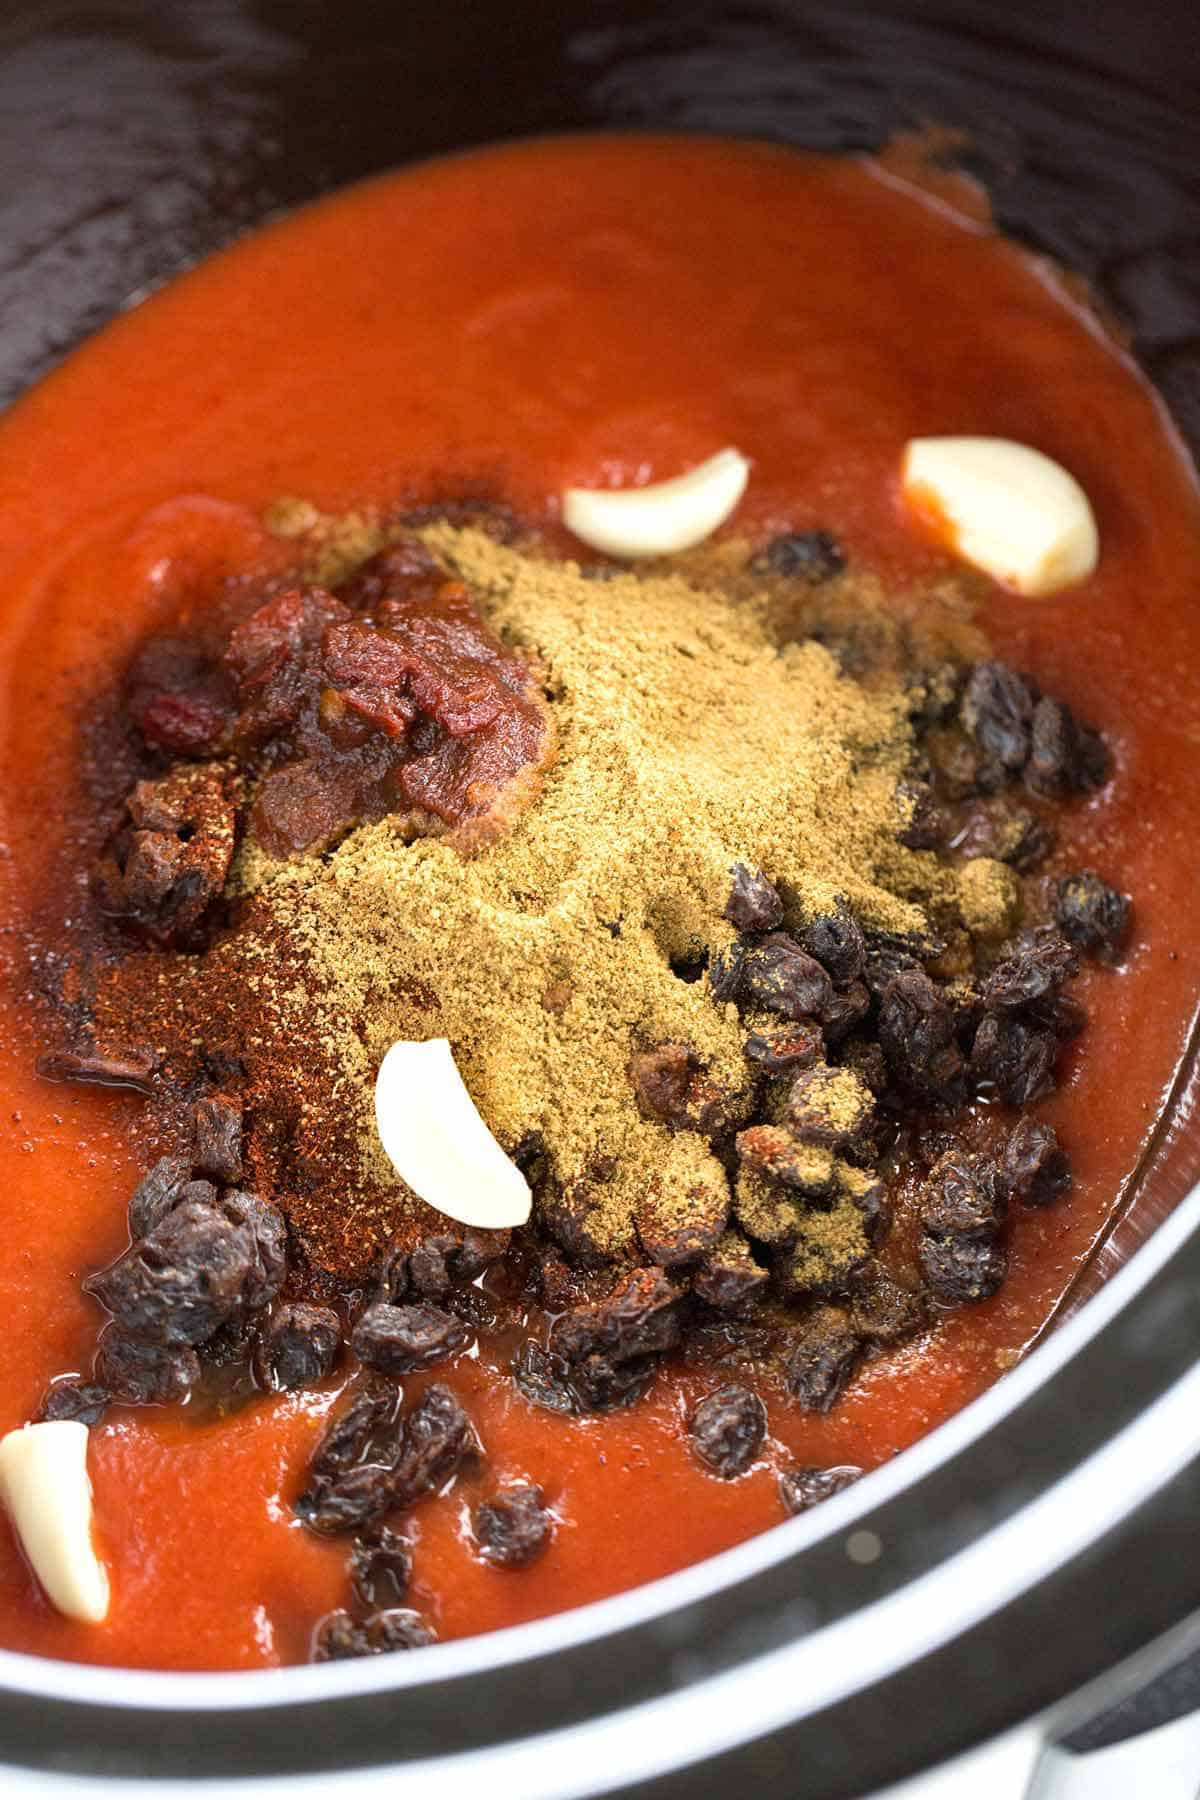 Adding the Mexican-style mole sauce ingredients into a slow cooker